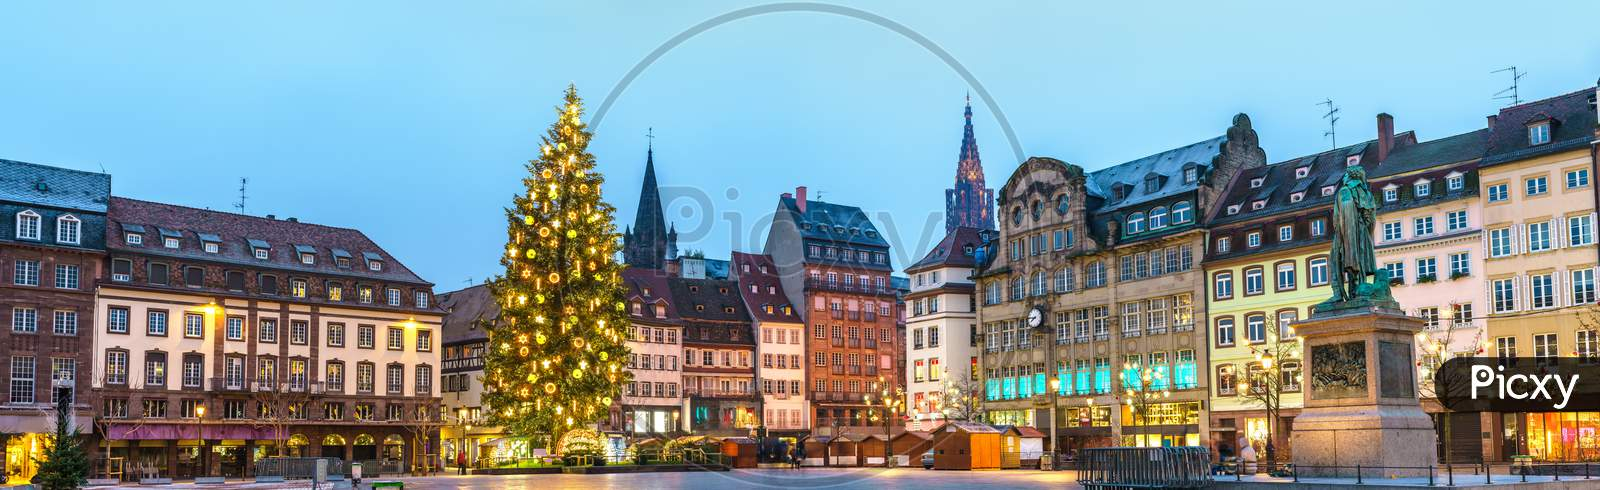 Panorama Of Place Kleber With The Christmas Market In Strasbourg, France